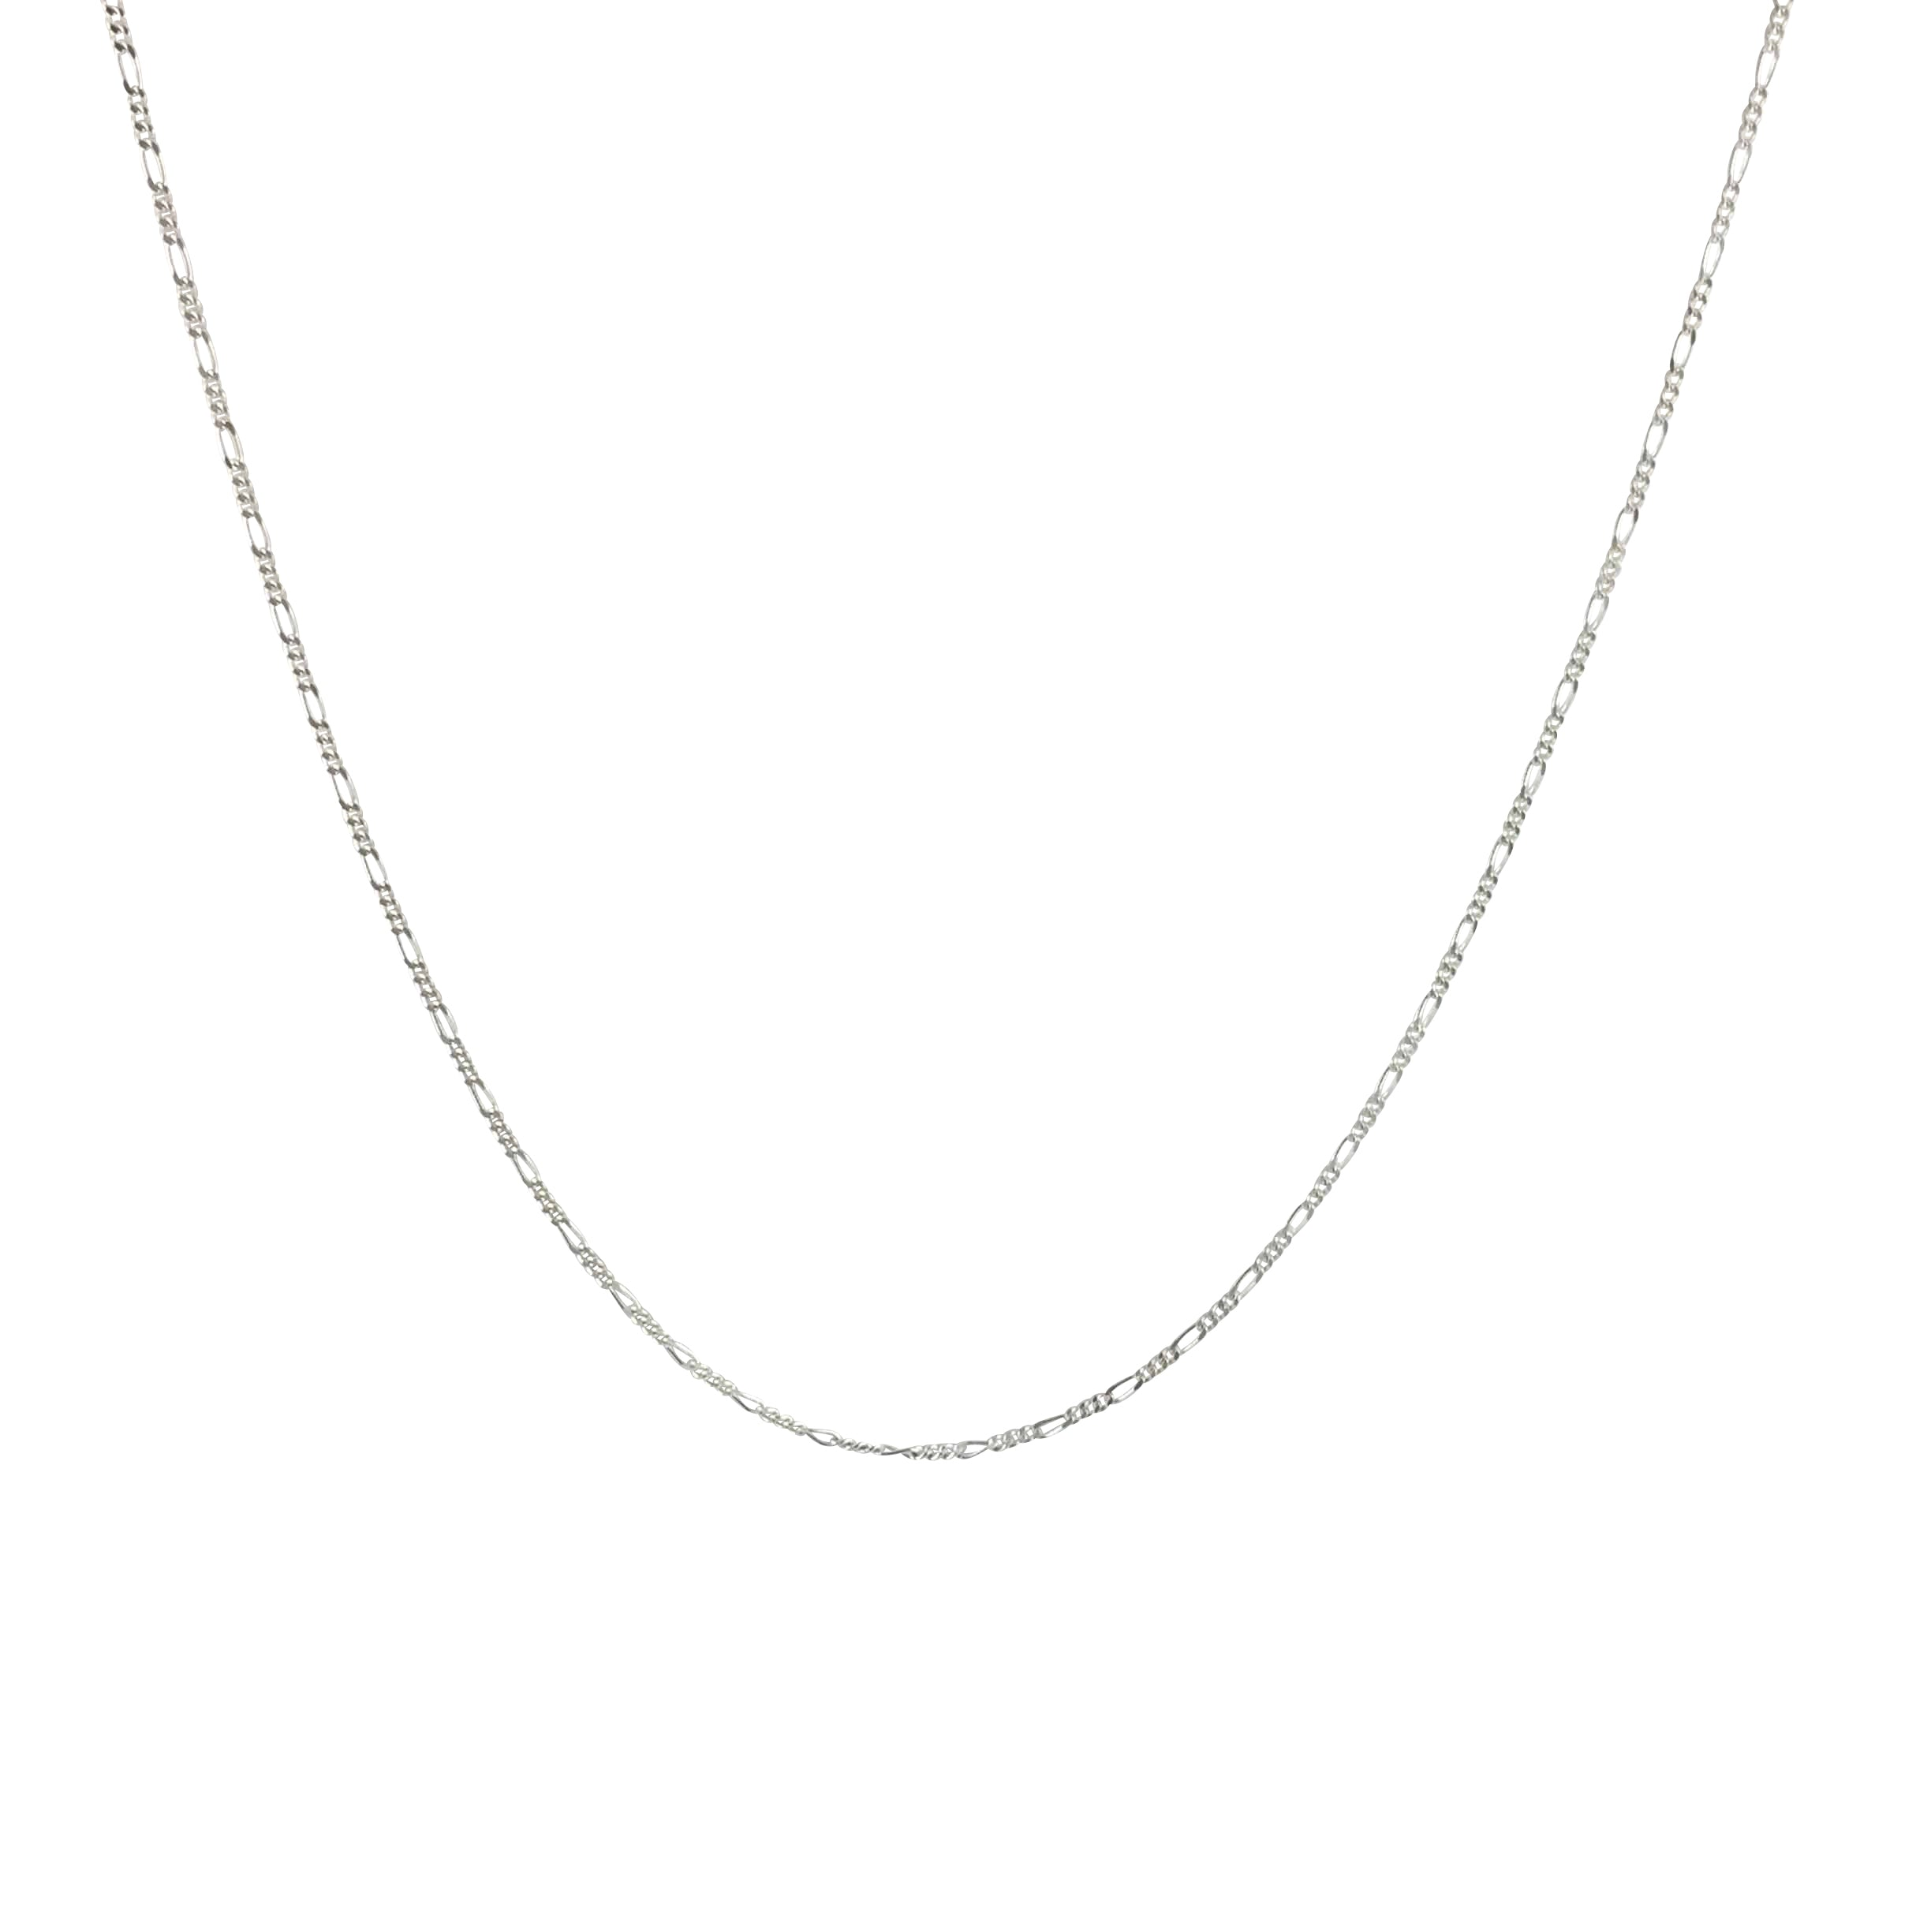 Oro Oro Jewelry - Chains & Charms - Silver Figaro Chain